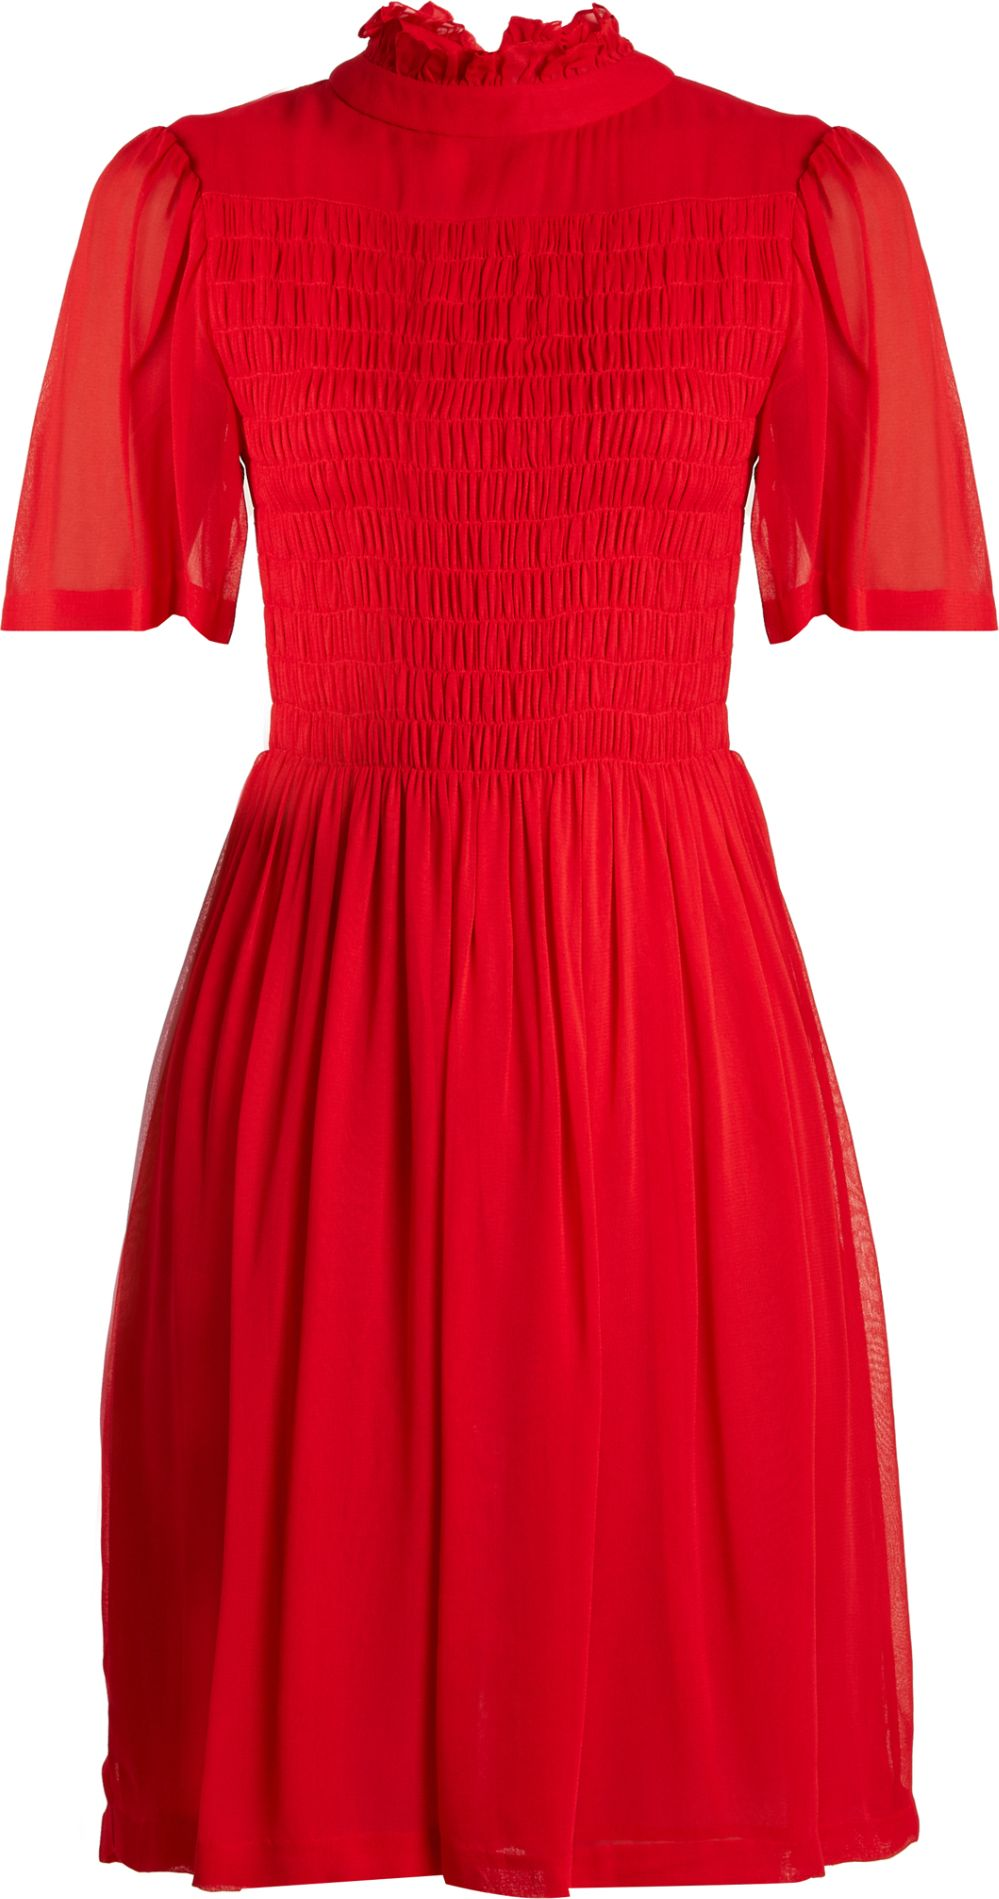 Alexachung - Short-sleeved smocked georgette dress